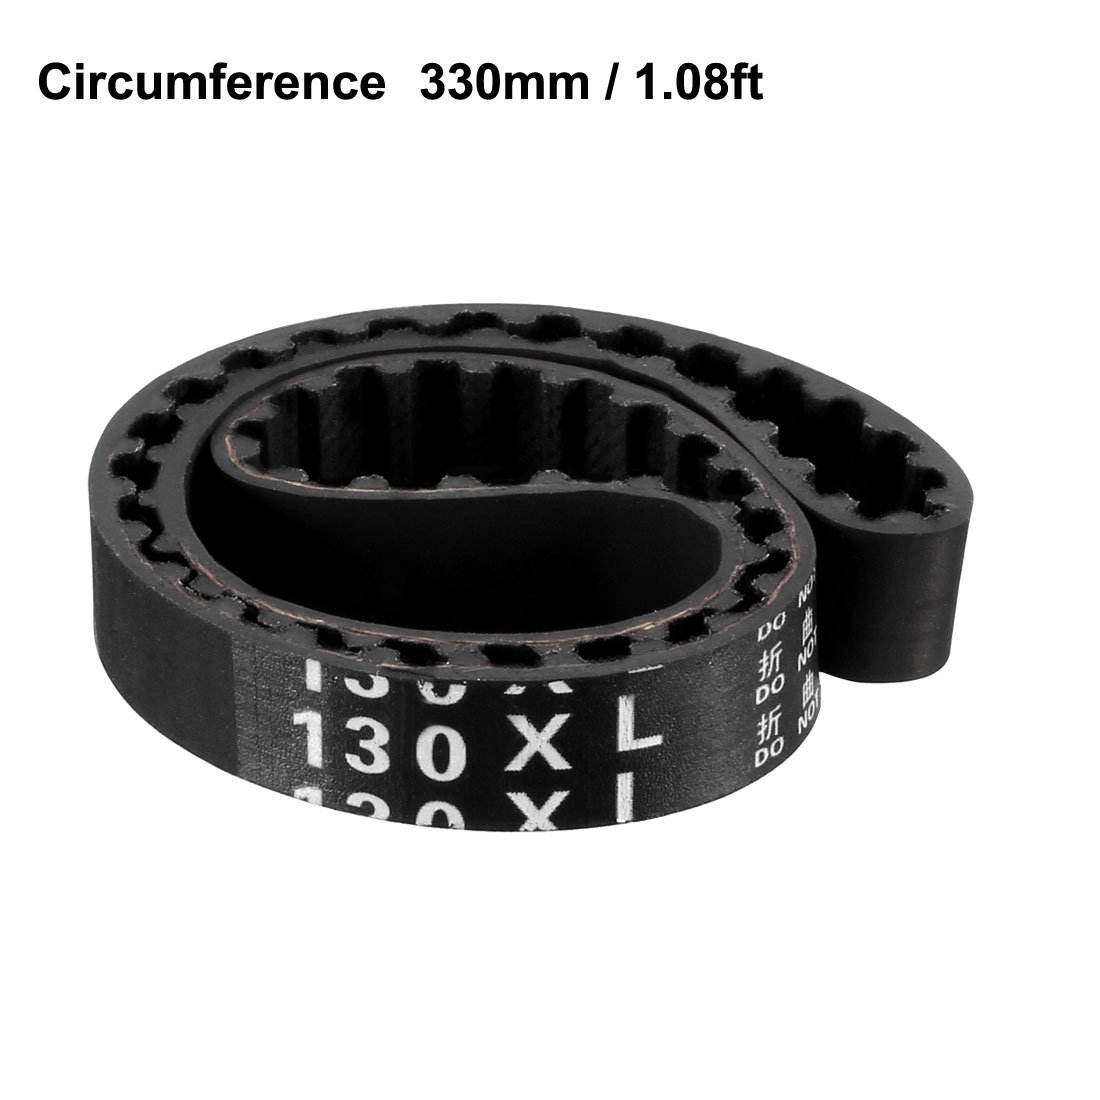 uxcell 142XL Rubber Timing Belt Synchronous Closed Loop Timing Belt Pulleys 10mm Width a16111400ux0164